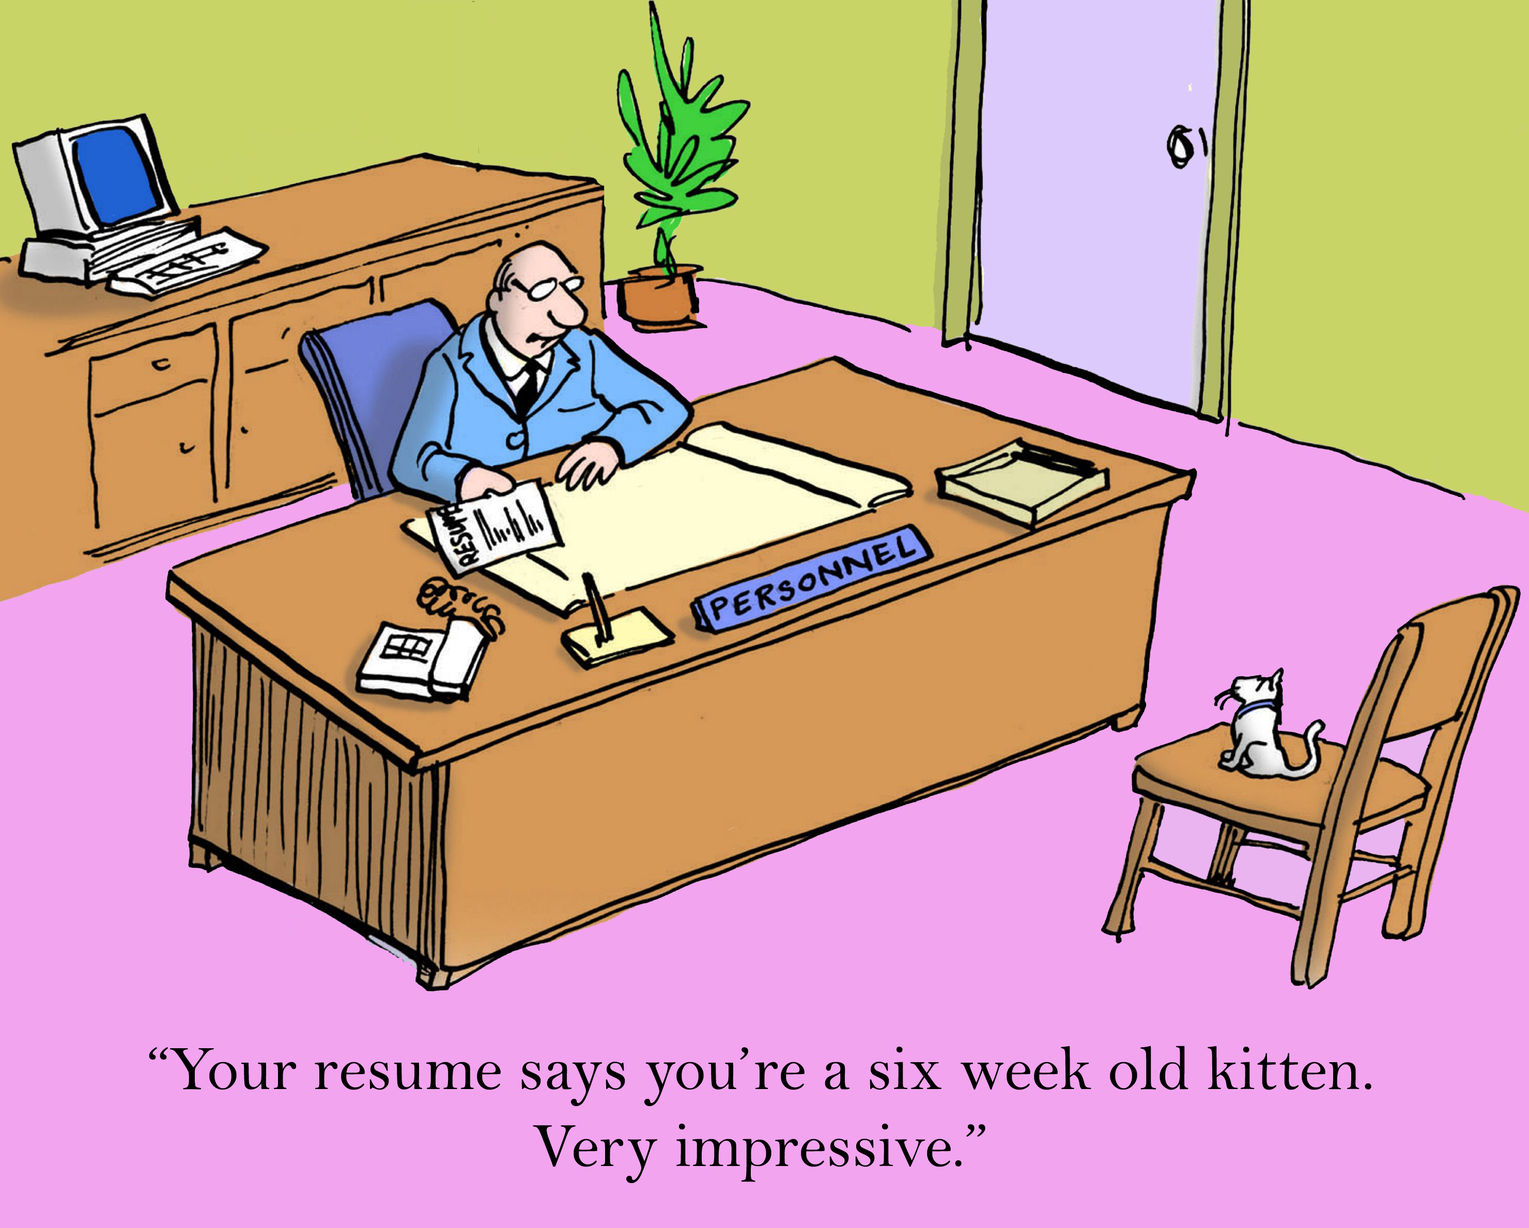 am i hired managing job interview expectations ladyclever kittenresume